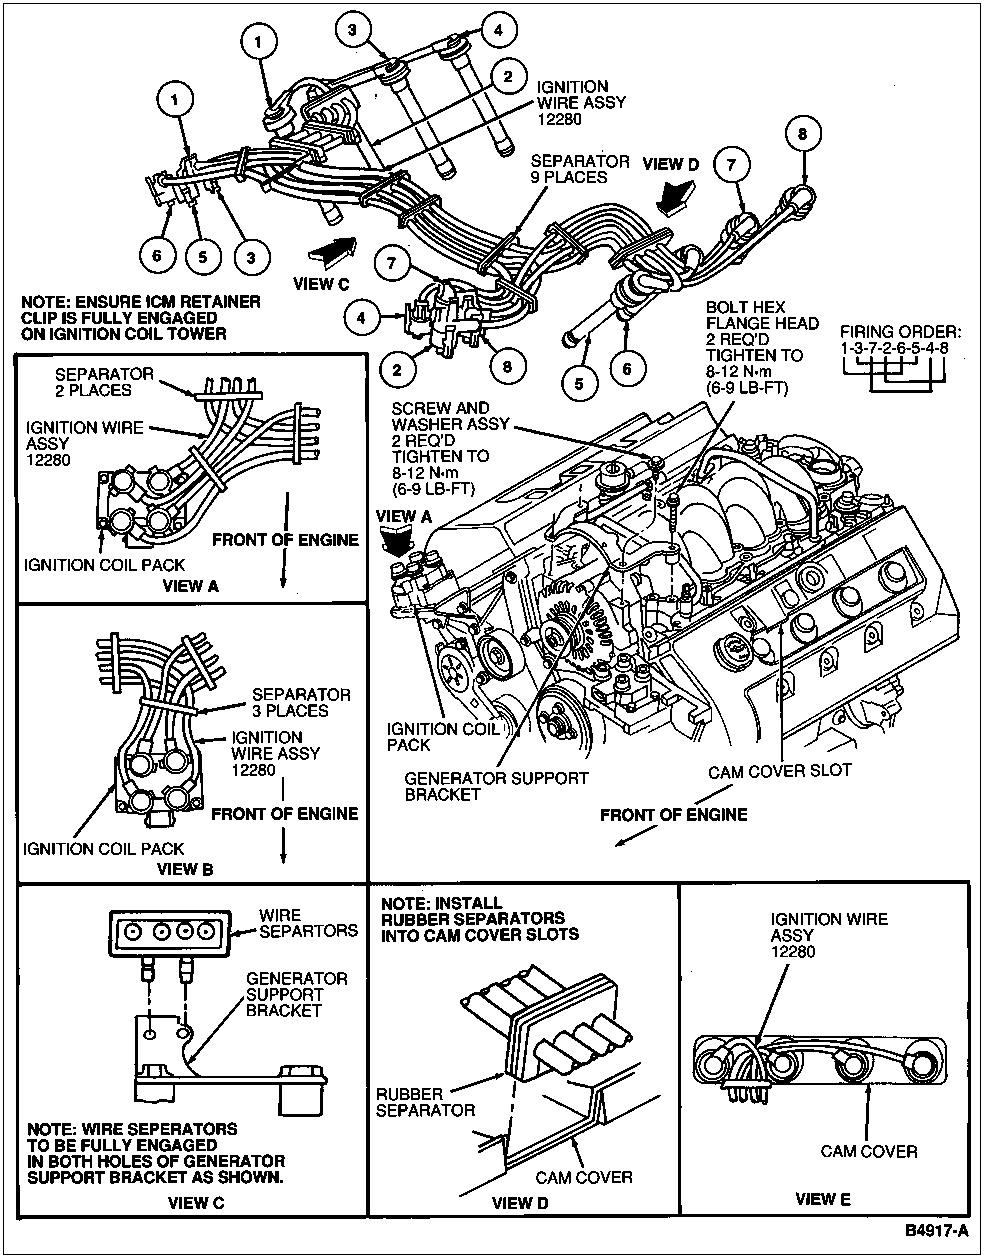 1996 lincoln mark viii fuse panel diagram wiring